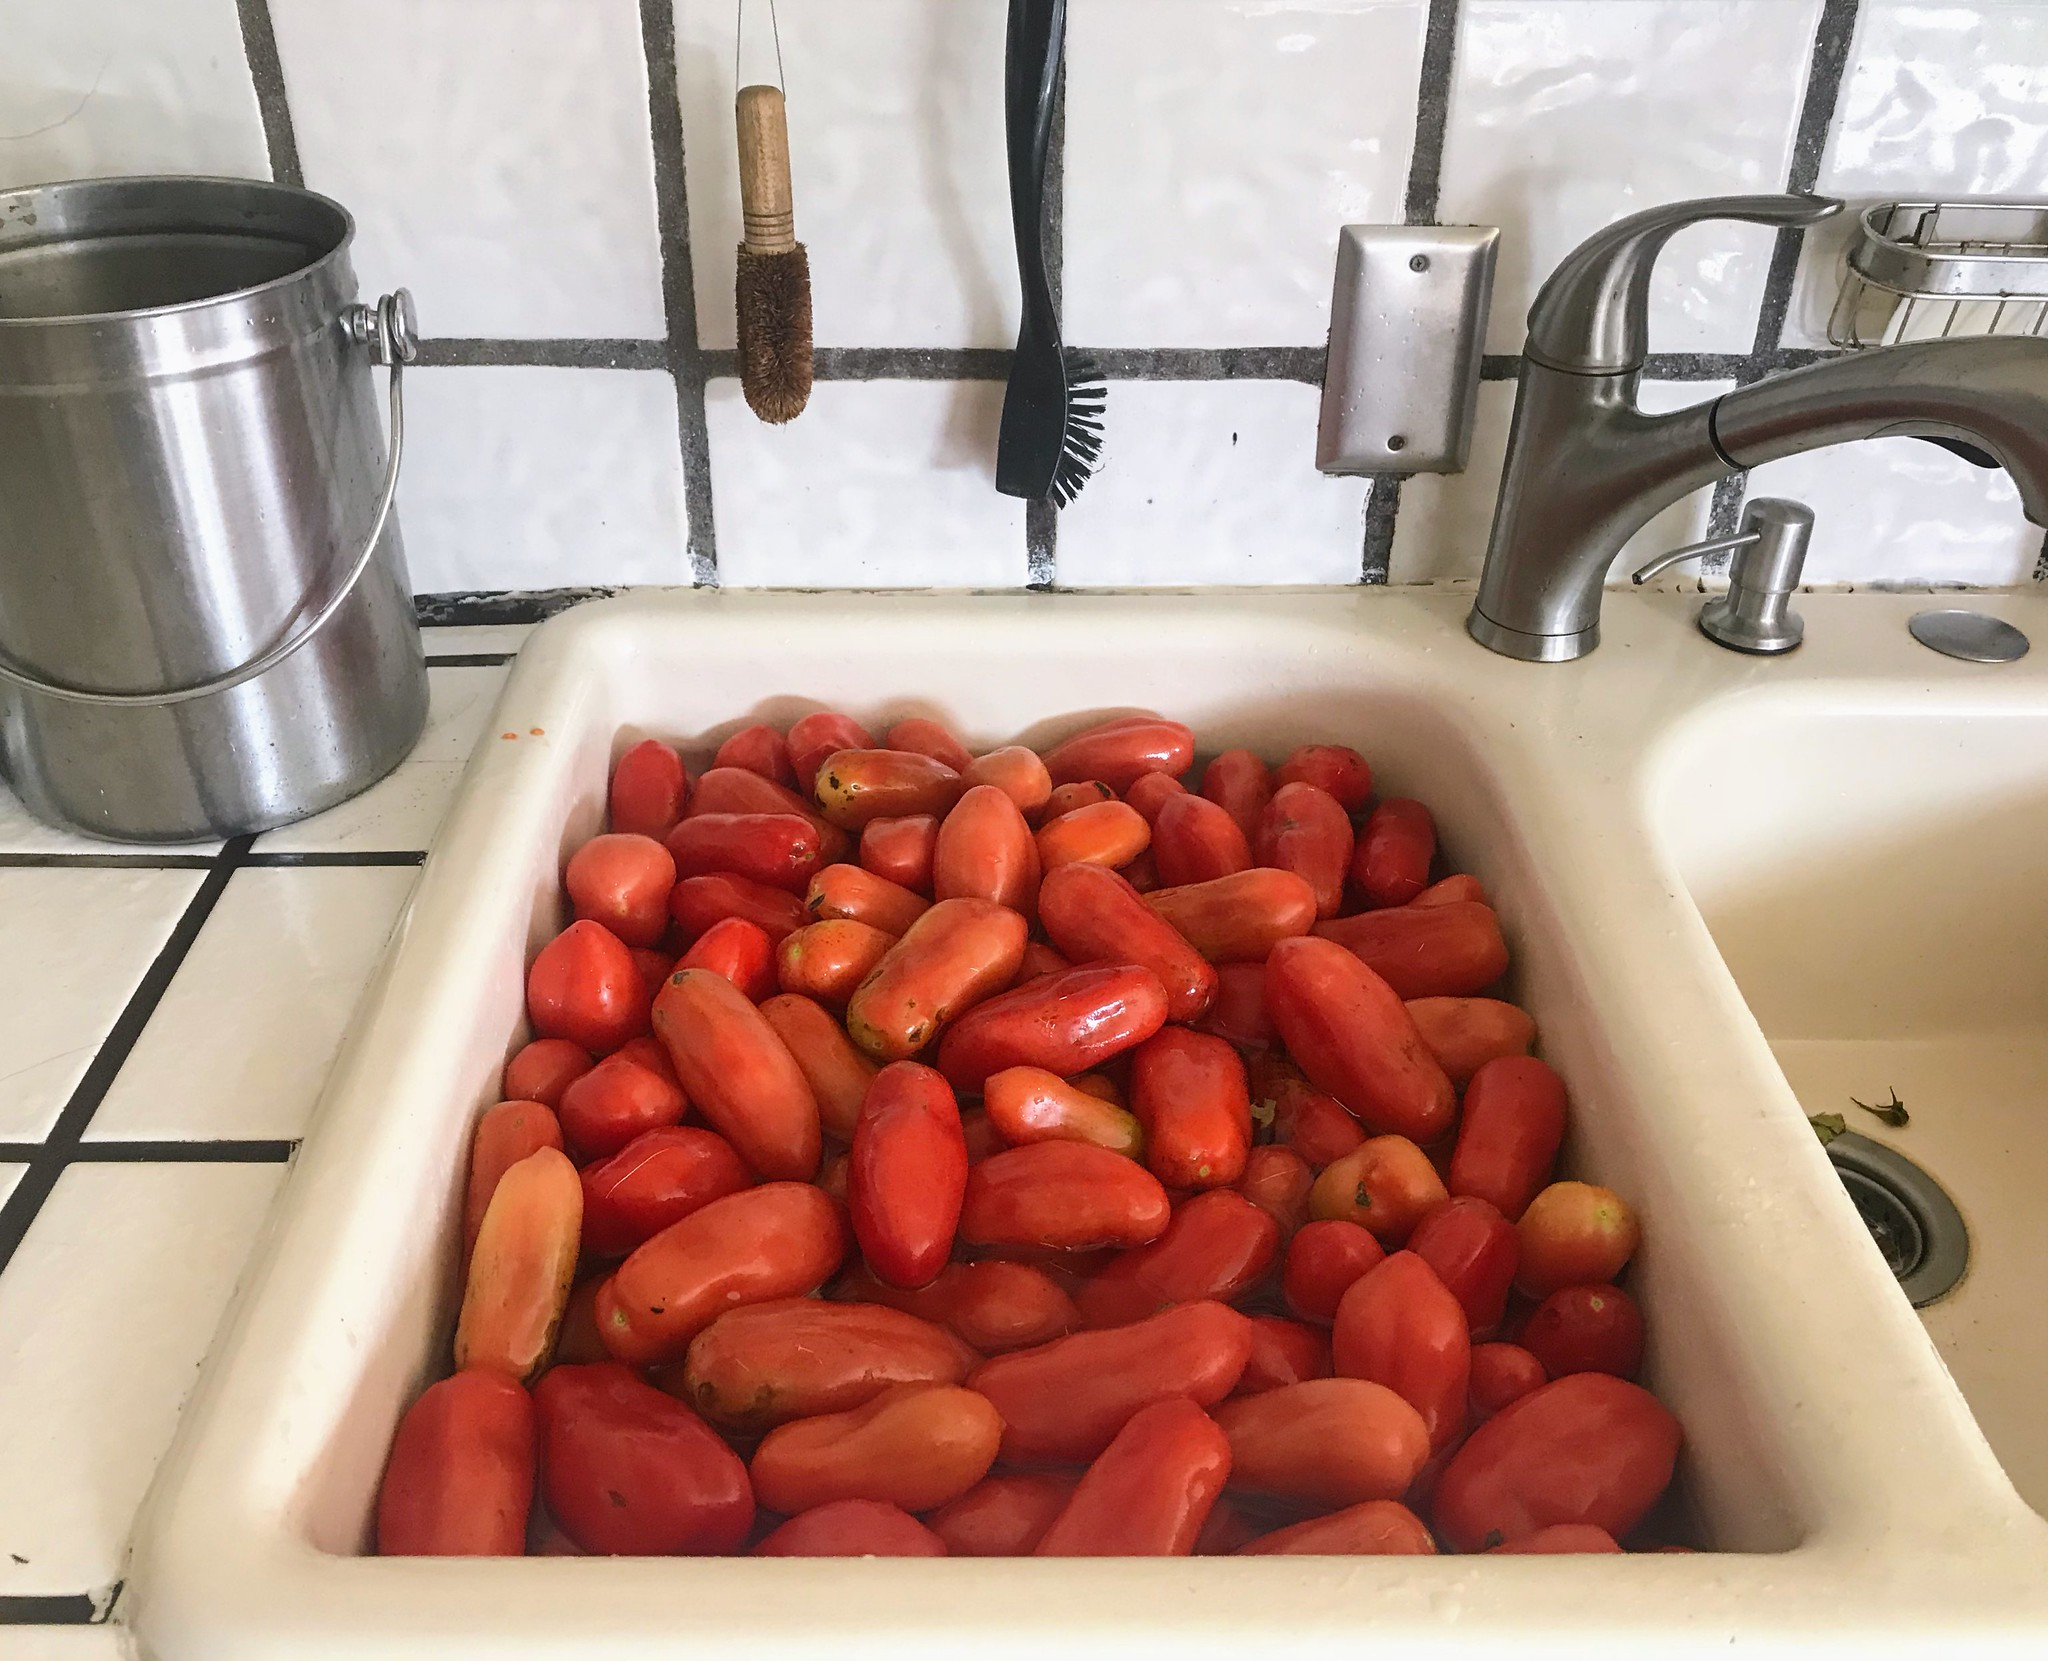 A sink full of tomatoes